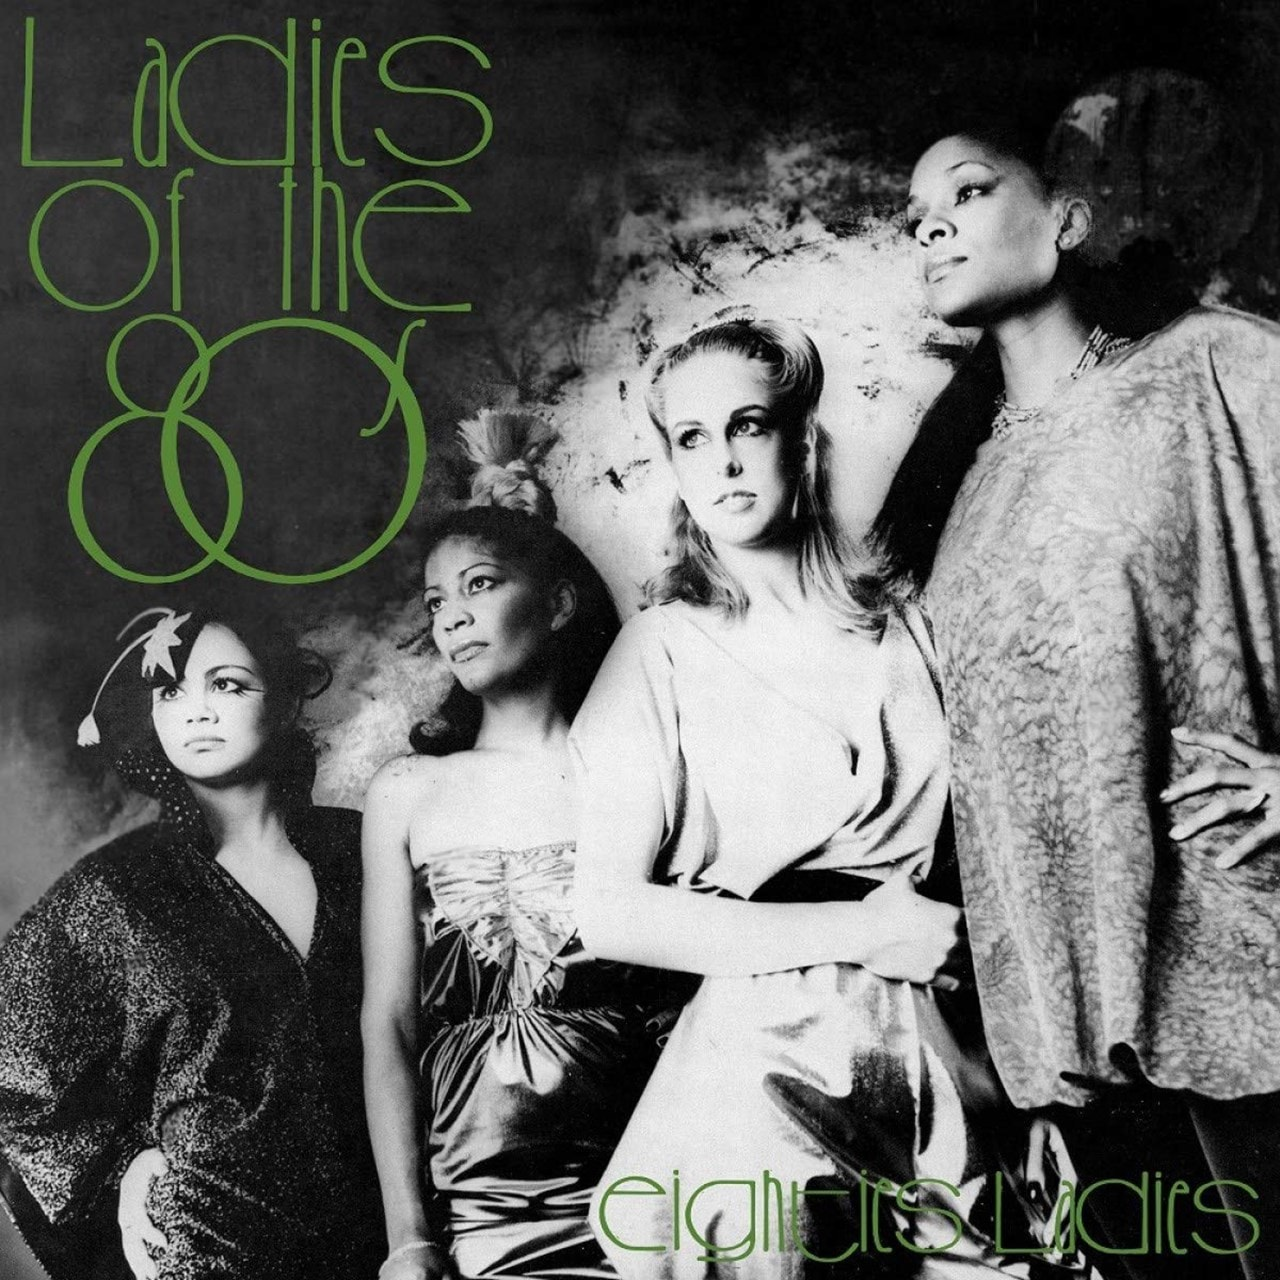 Ladies of the 80s - 1